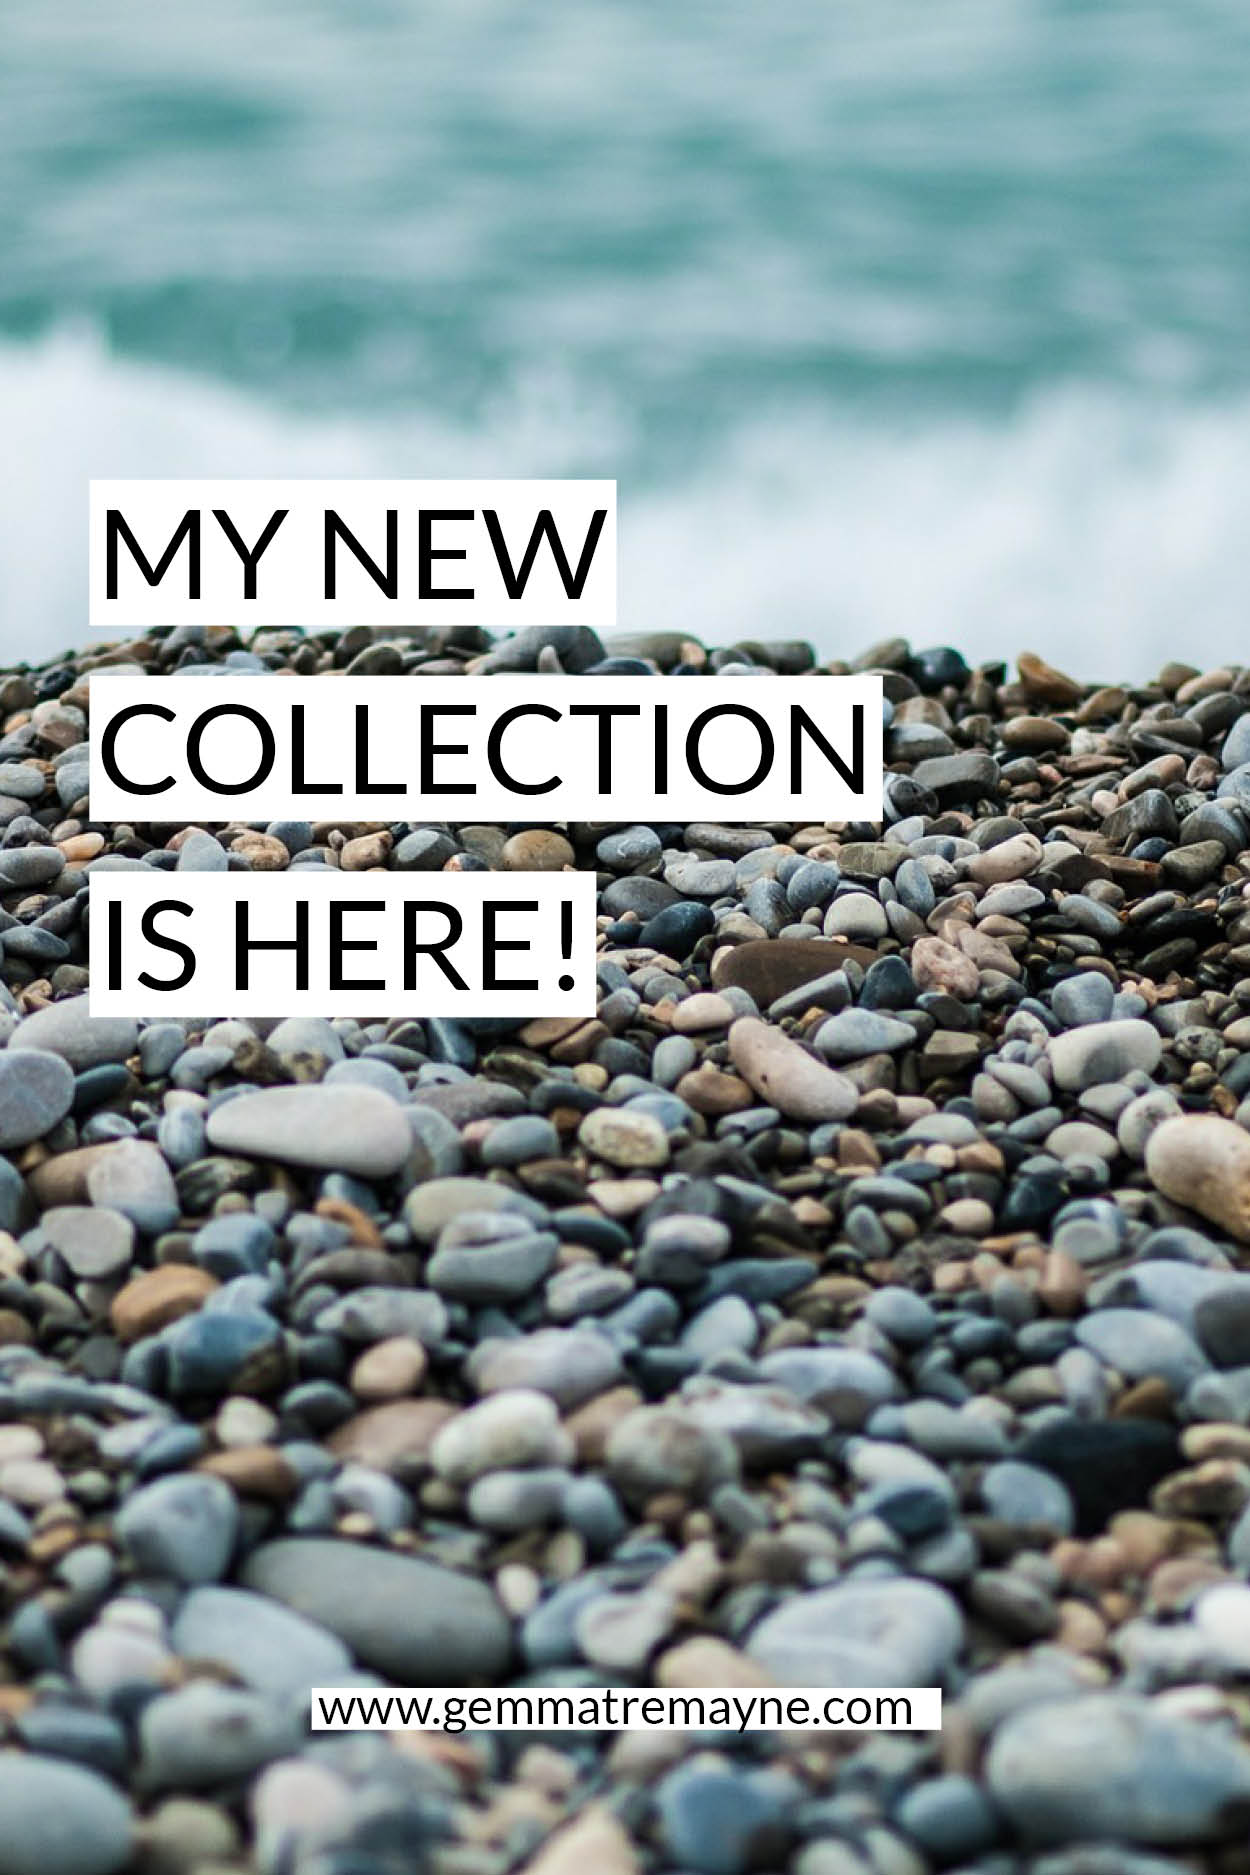 My New Collection is Here!